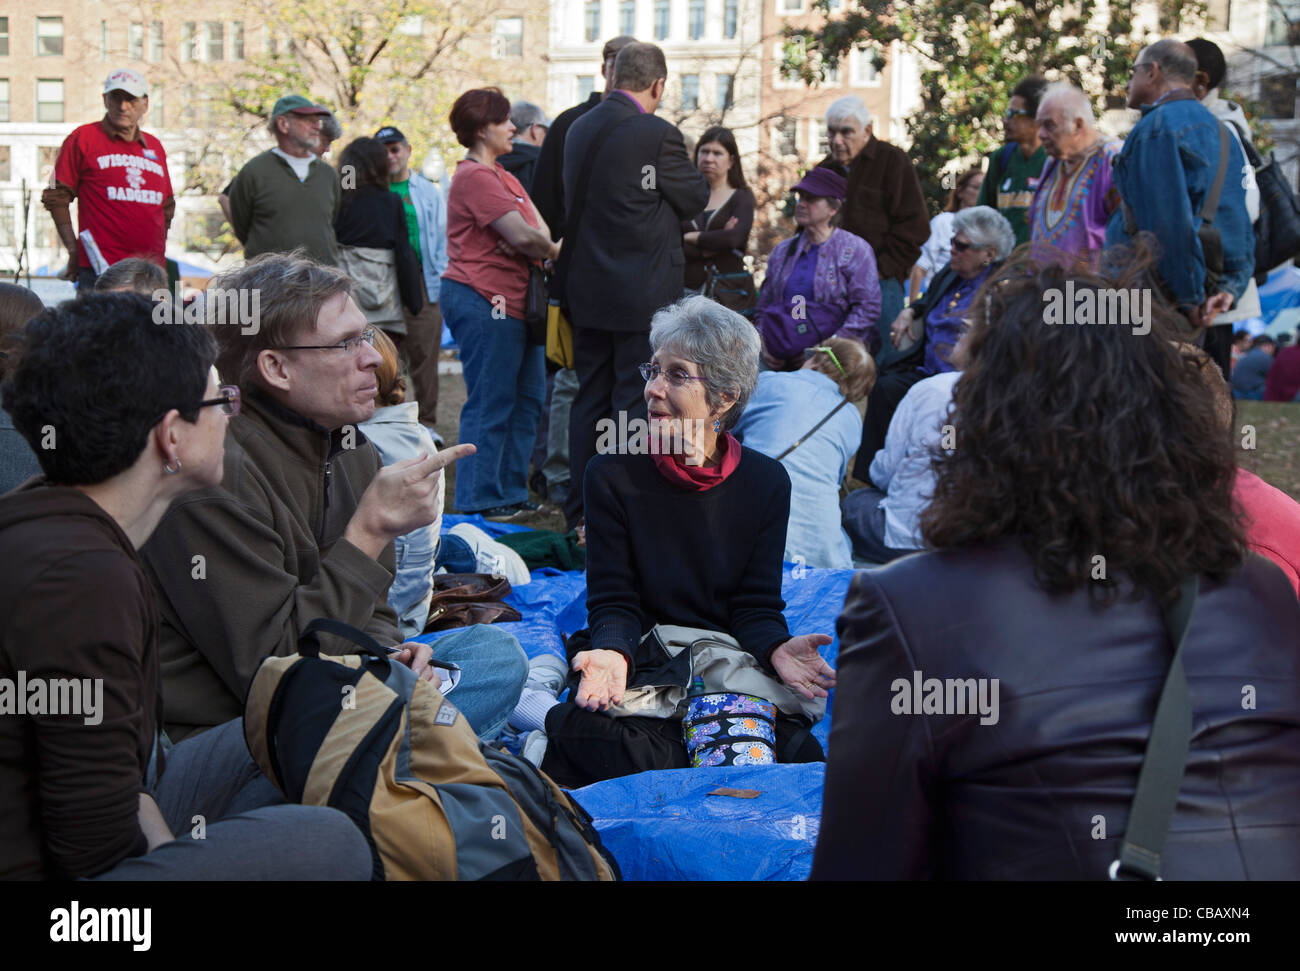 Washington, DC - Interfaith activists meet at the Occupy DC camp in McPherson Square. - Stock Image